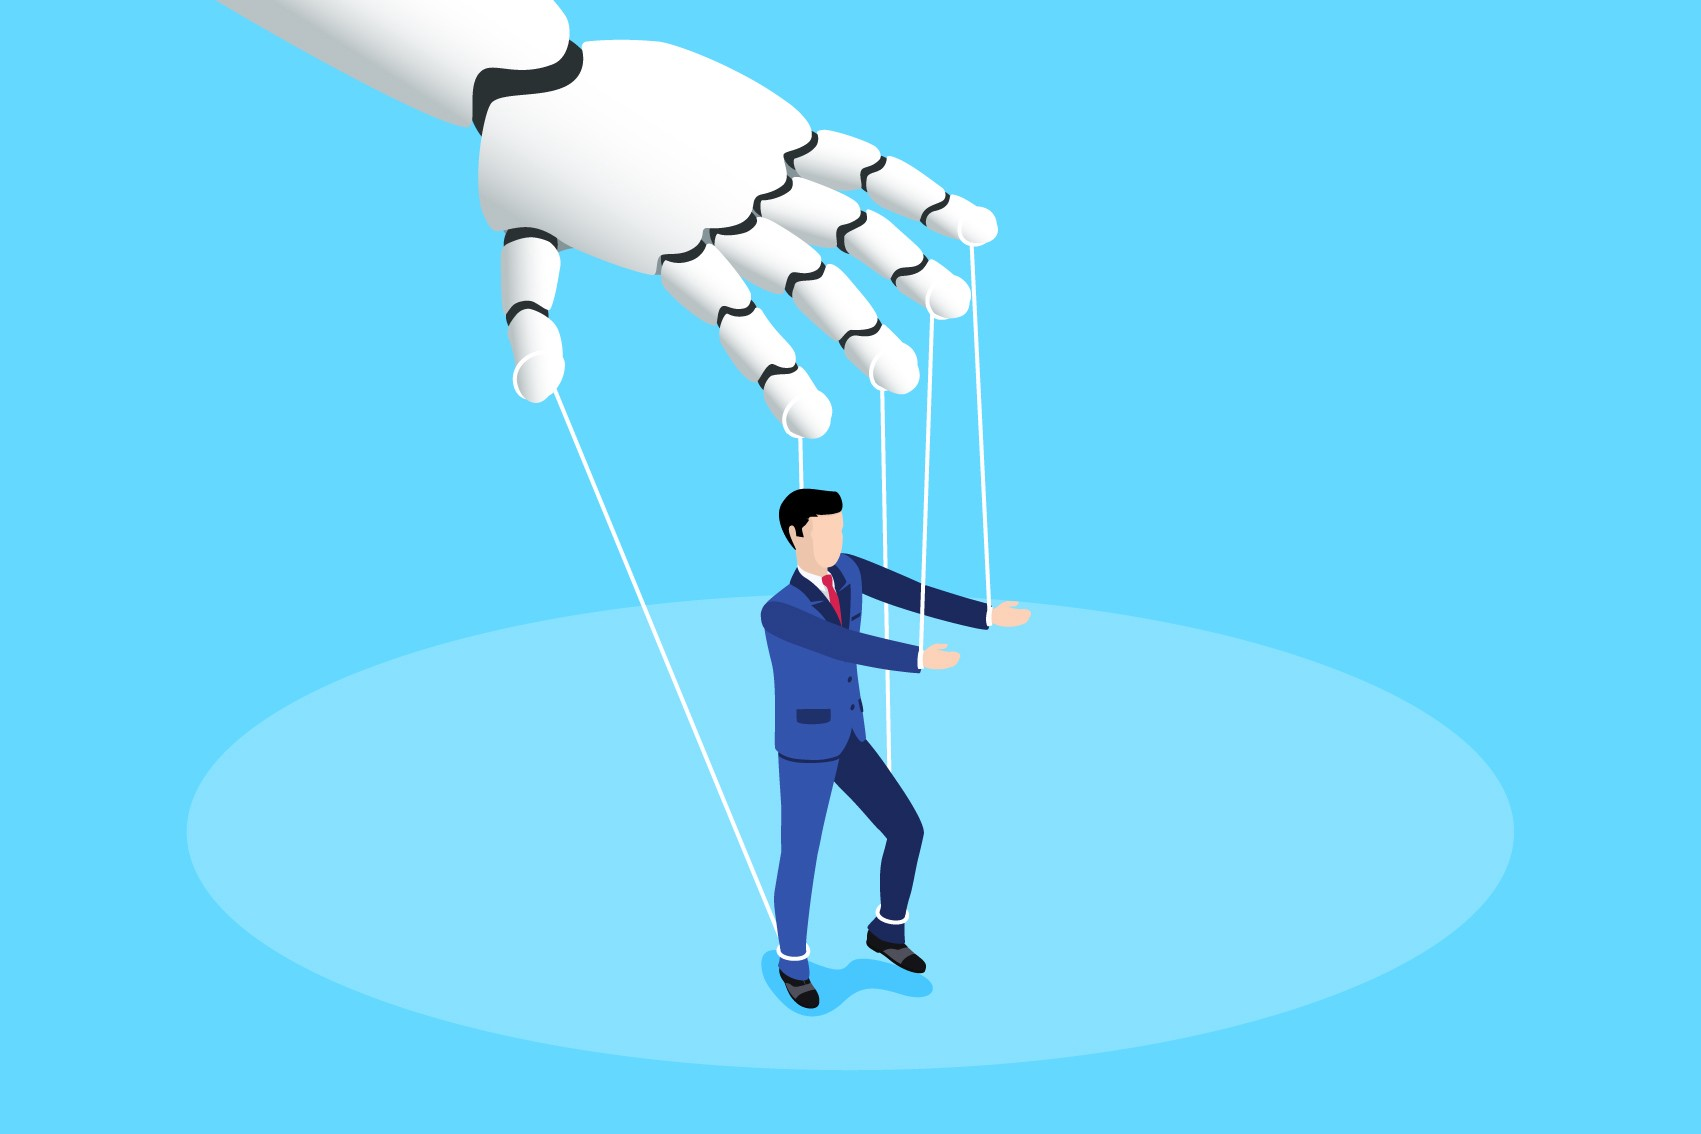 Robot hand manipulates a man in a business suit